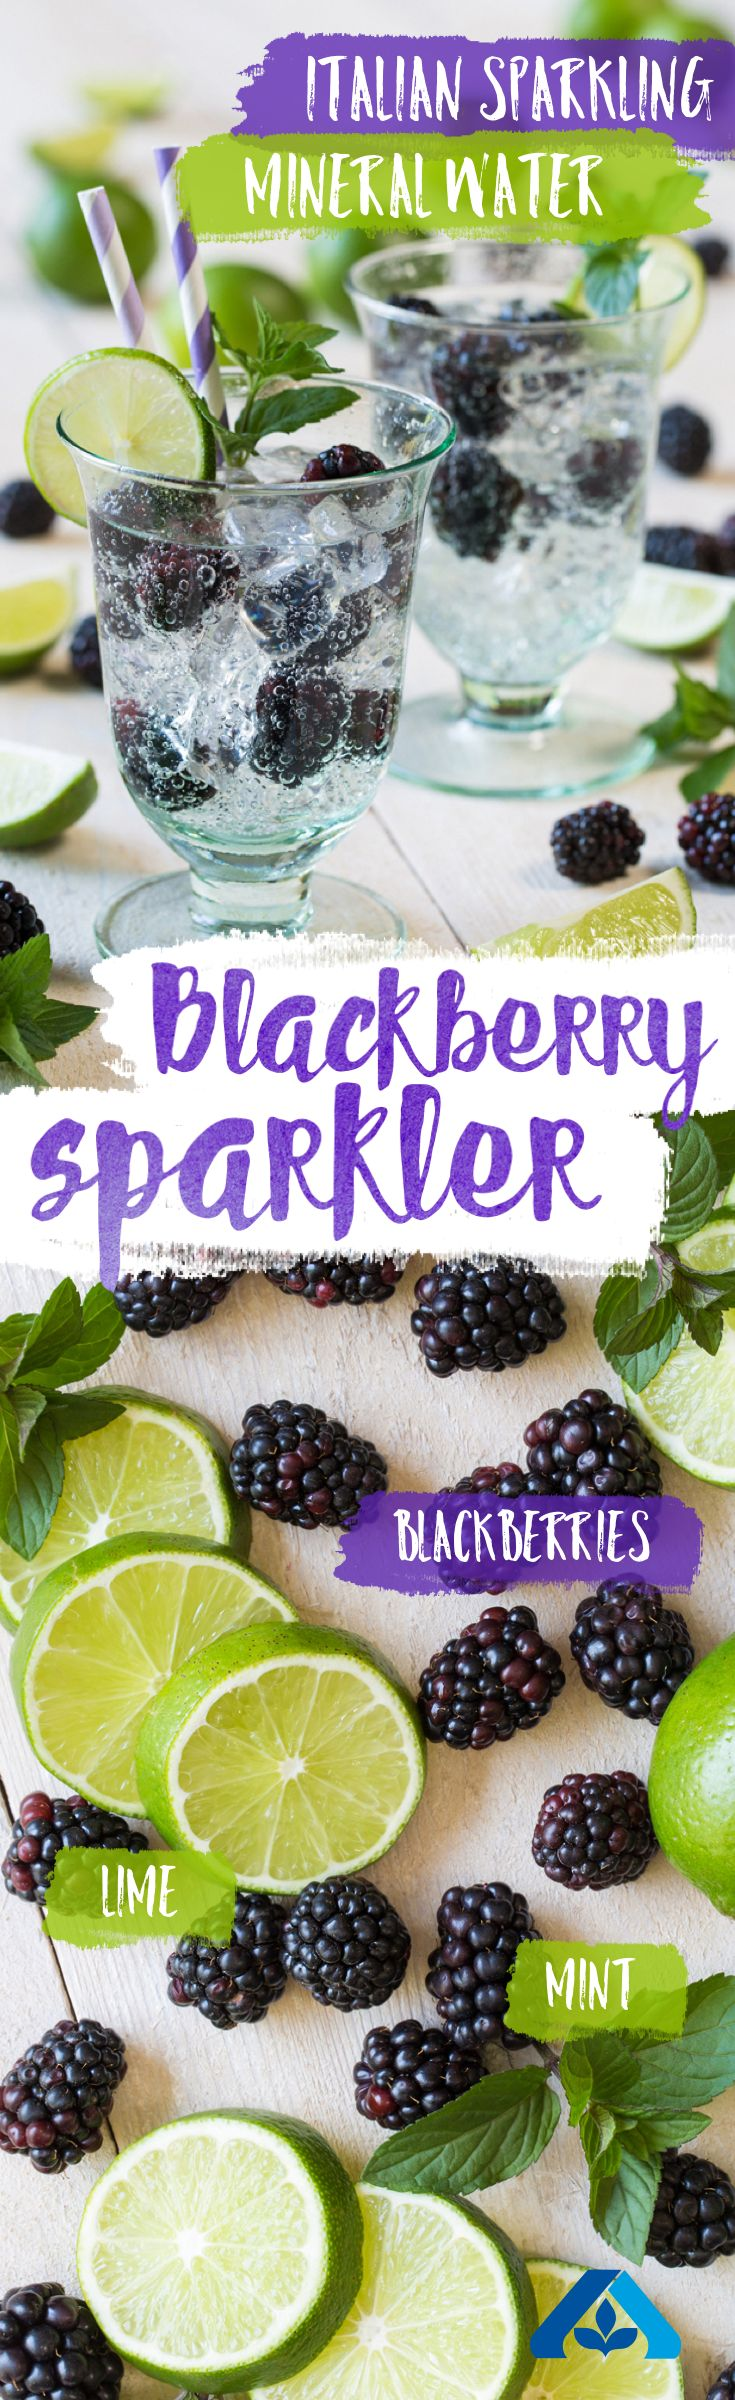 This Blackberry Sparkler recipe is simple and perfect for keeping cool, even in the middle of a heat wave! Just mix blackberries, lime and mint leaves with mineral water for this refreshing summer treat.